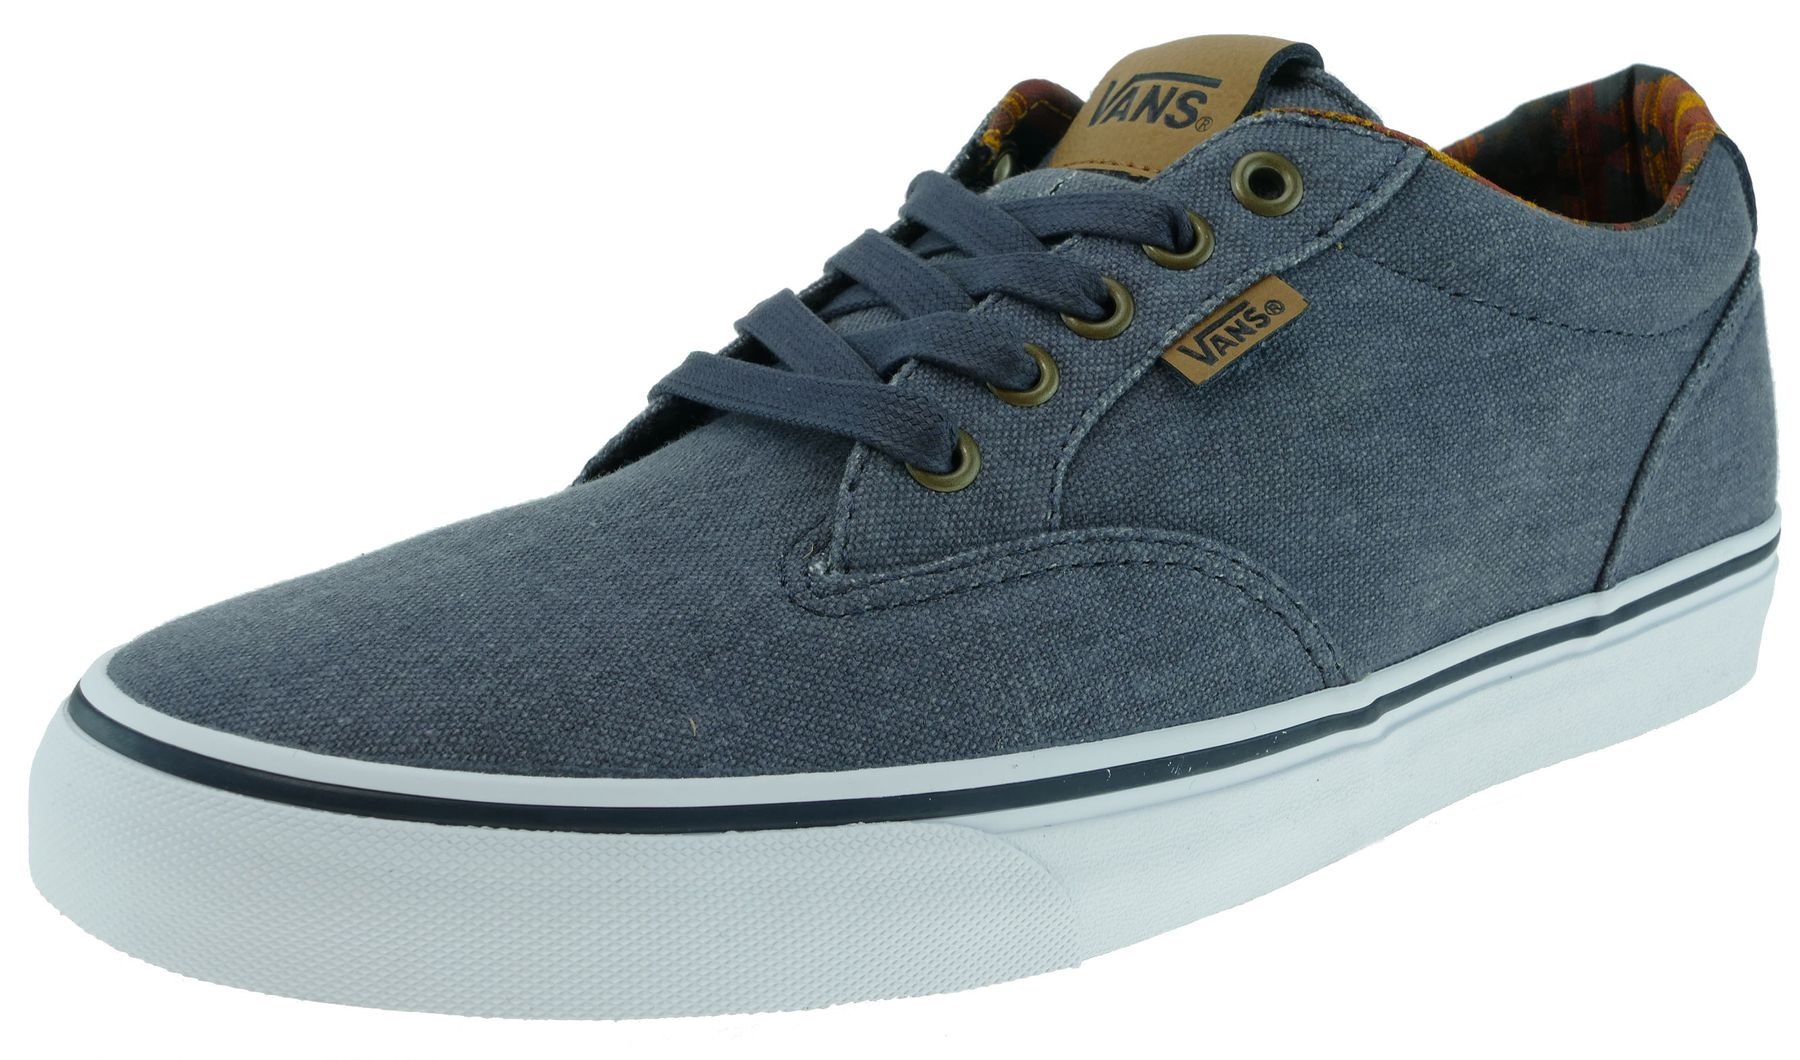 863b79aa99920c Vans winston active washed canvas ombrbl chipmunk jpg 1800x1060 Vans washed  canvas